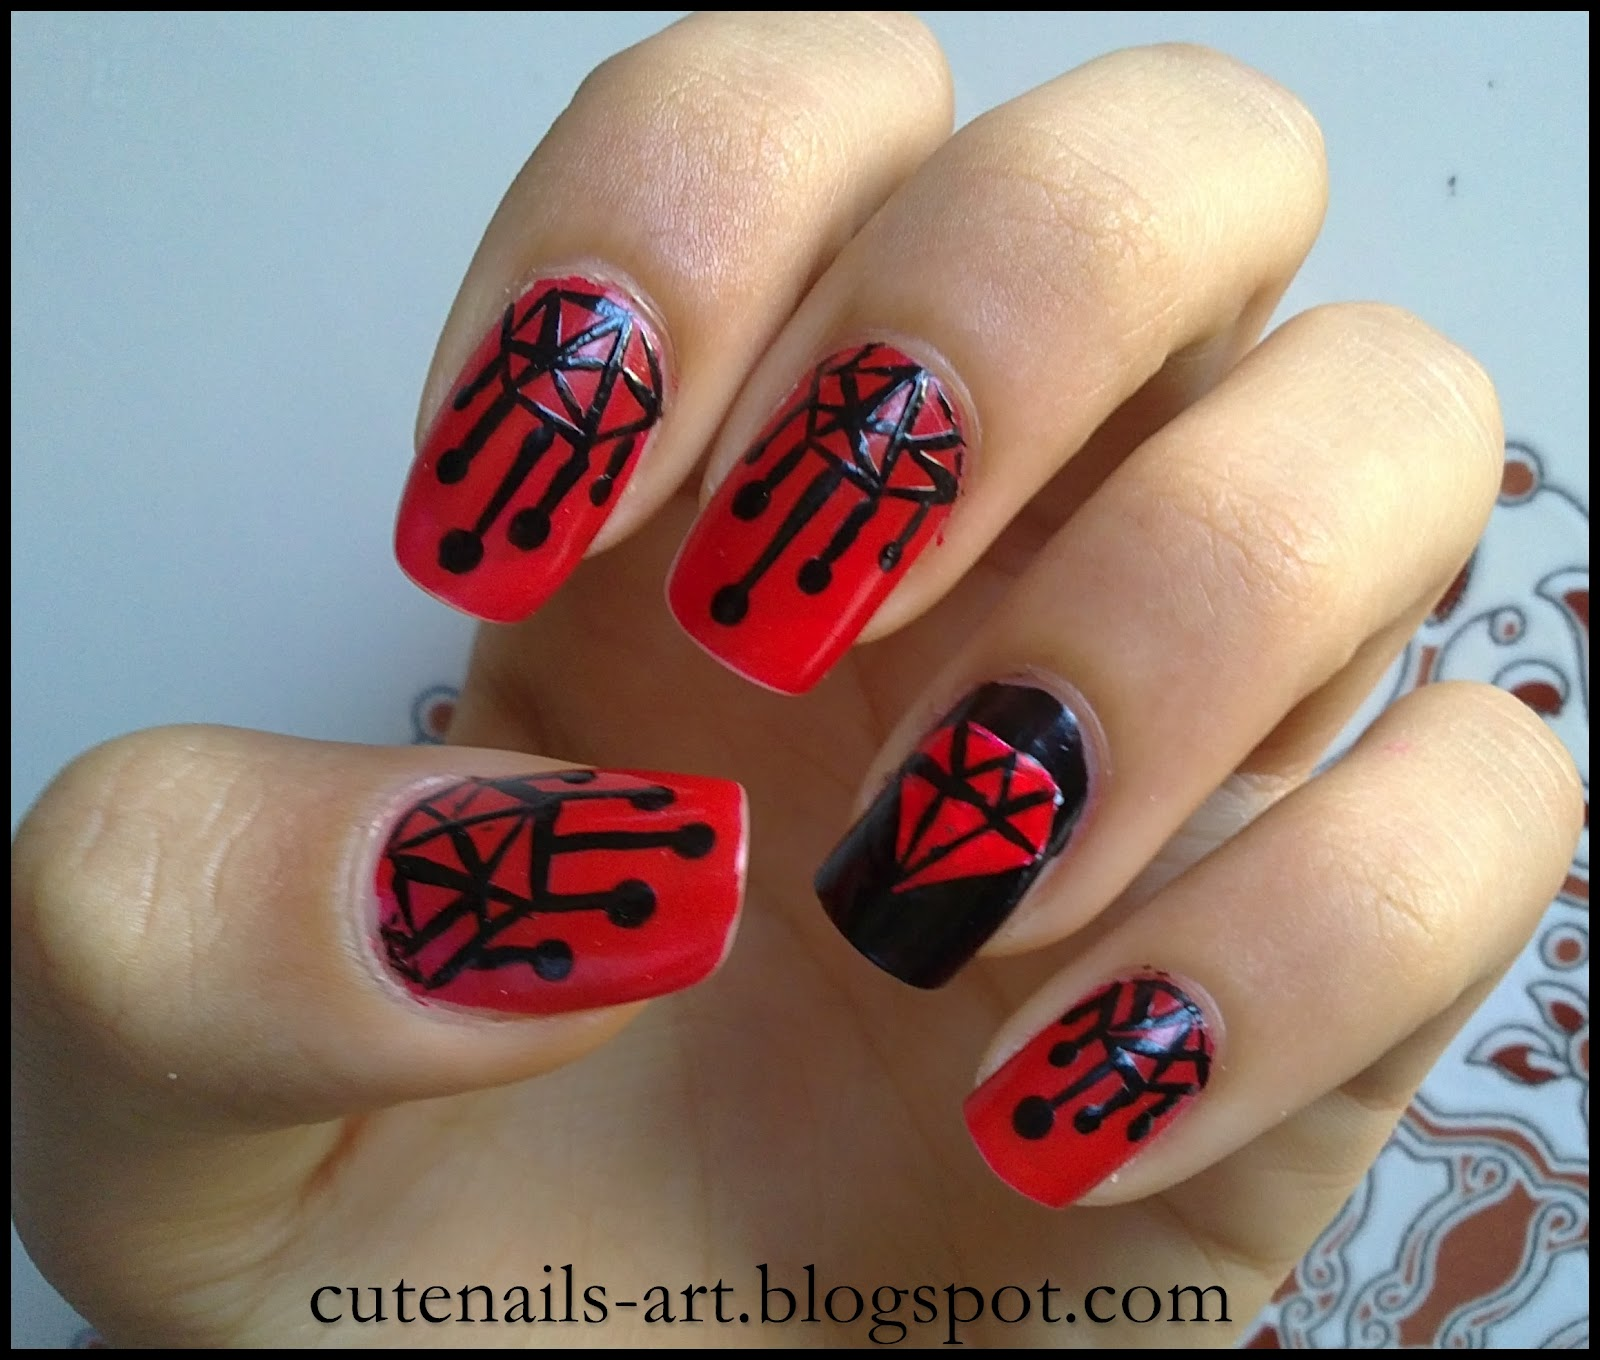 Diamonds Nail Art Design Ideas: Cutenails-art: Août 2012